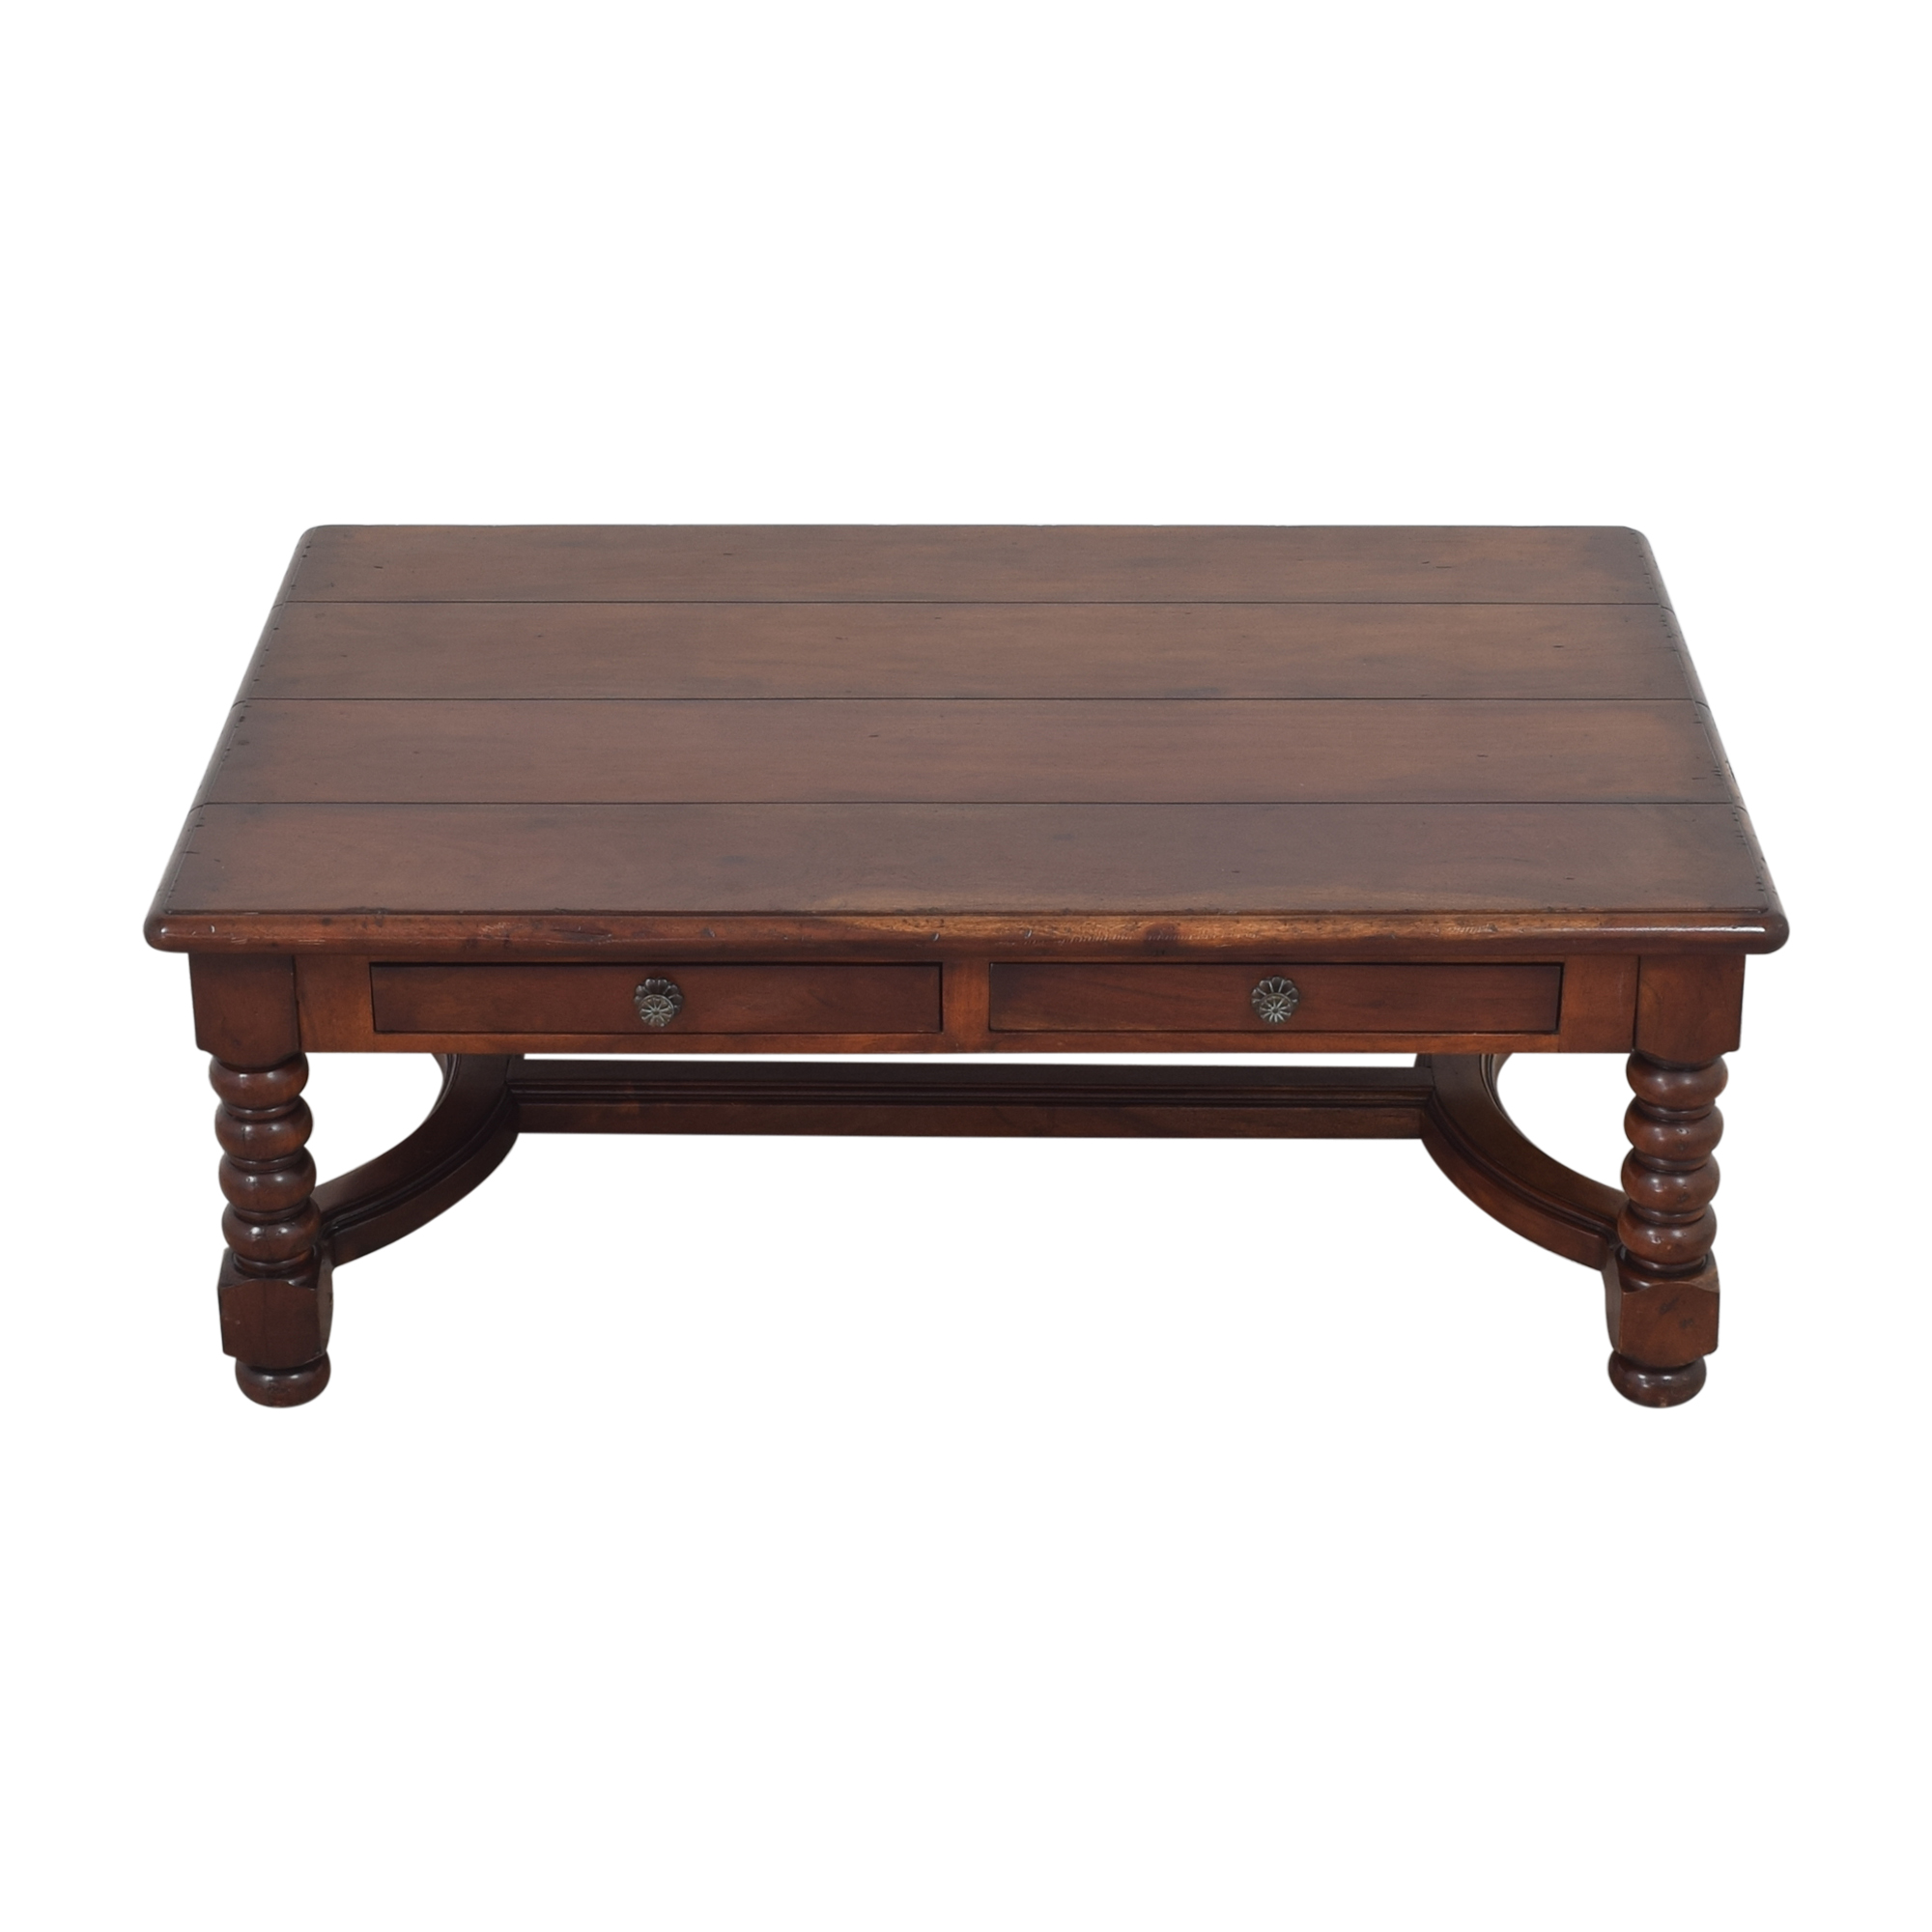 Four Drawer Storage Coffee Table dimensions